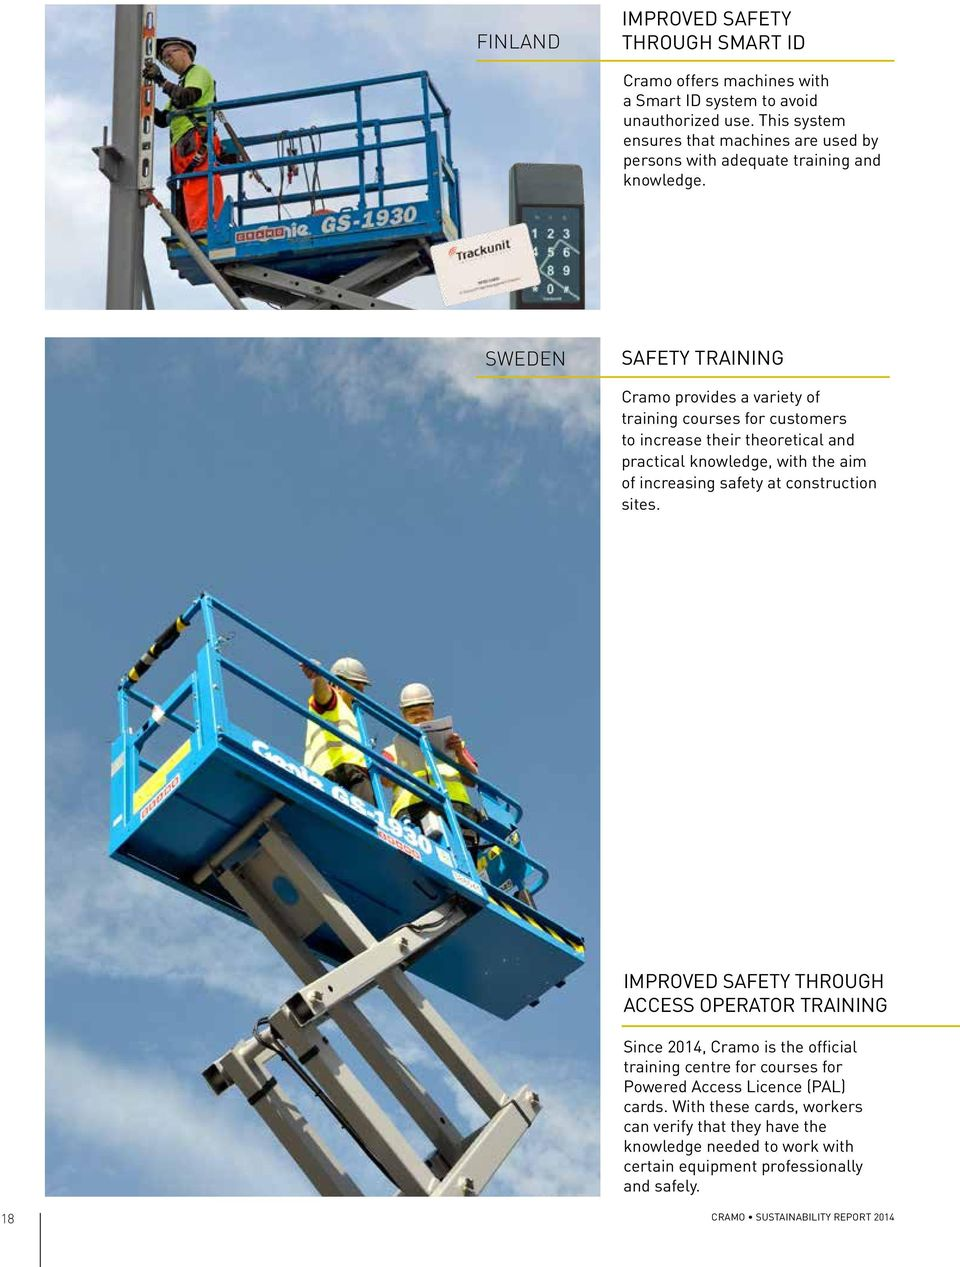 SWEDEN SAFETY TRAINING Cramo provides a variety of training courses for customers to increase their theoretical and practical knowledge, with the aim of increasing safety at